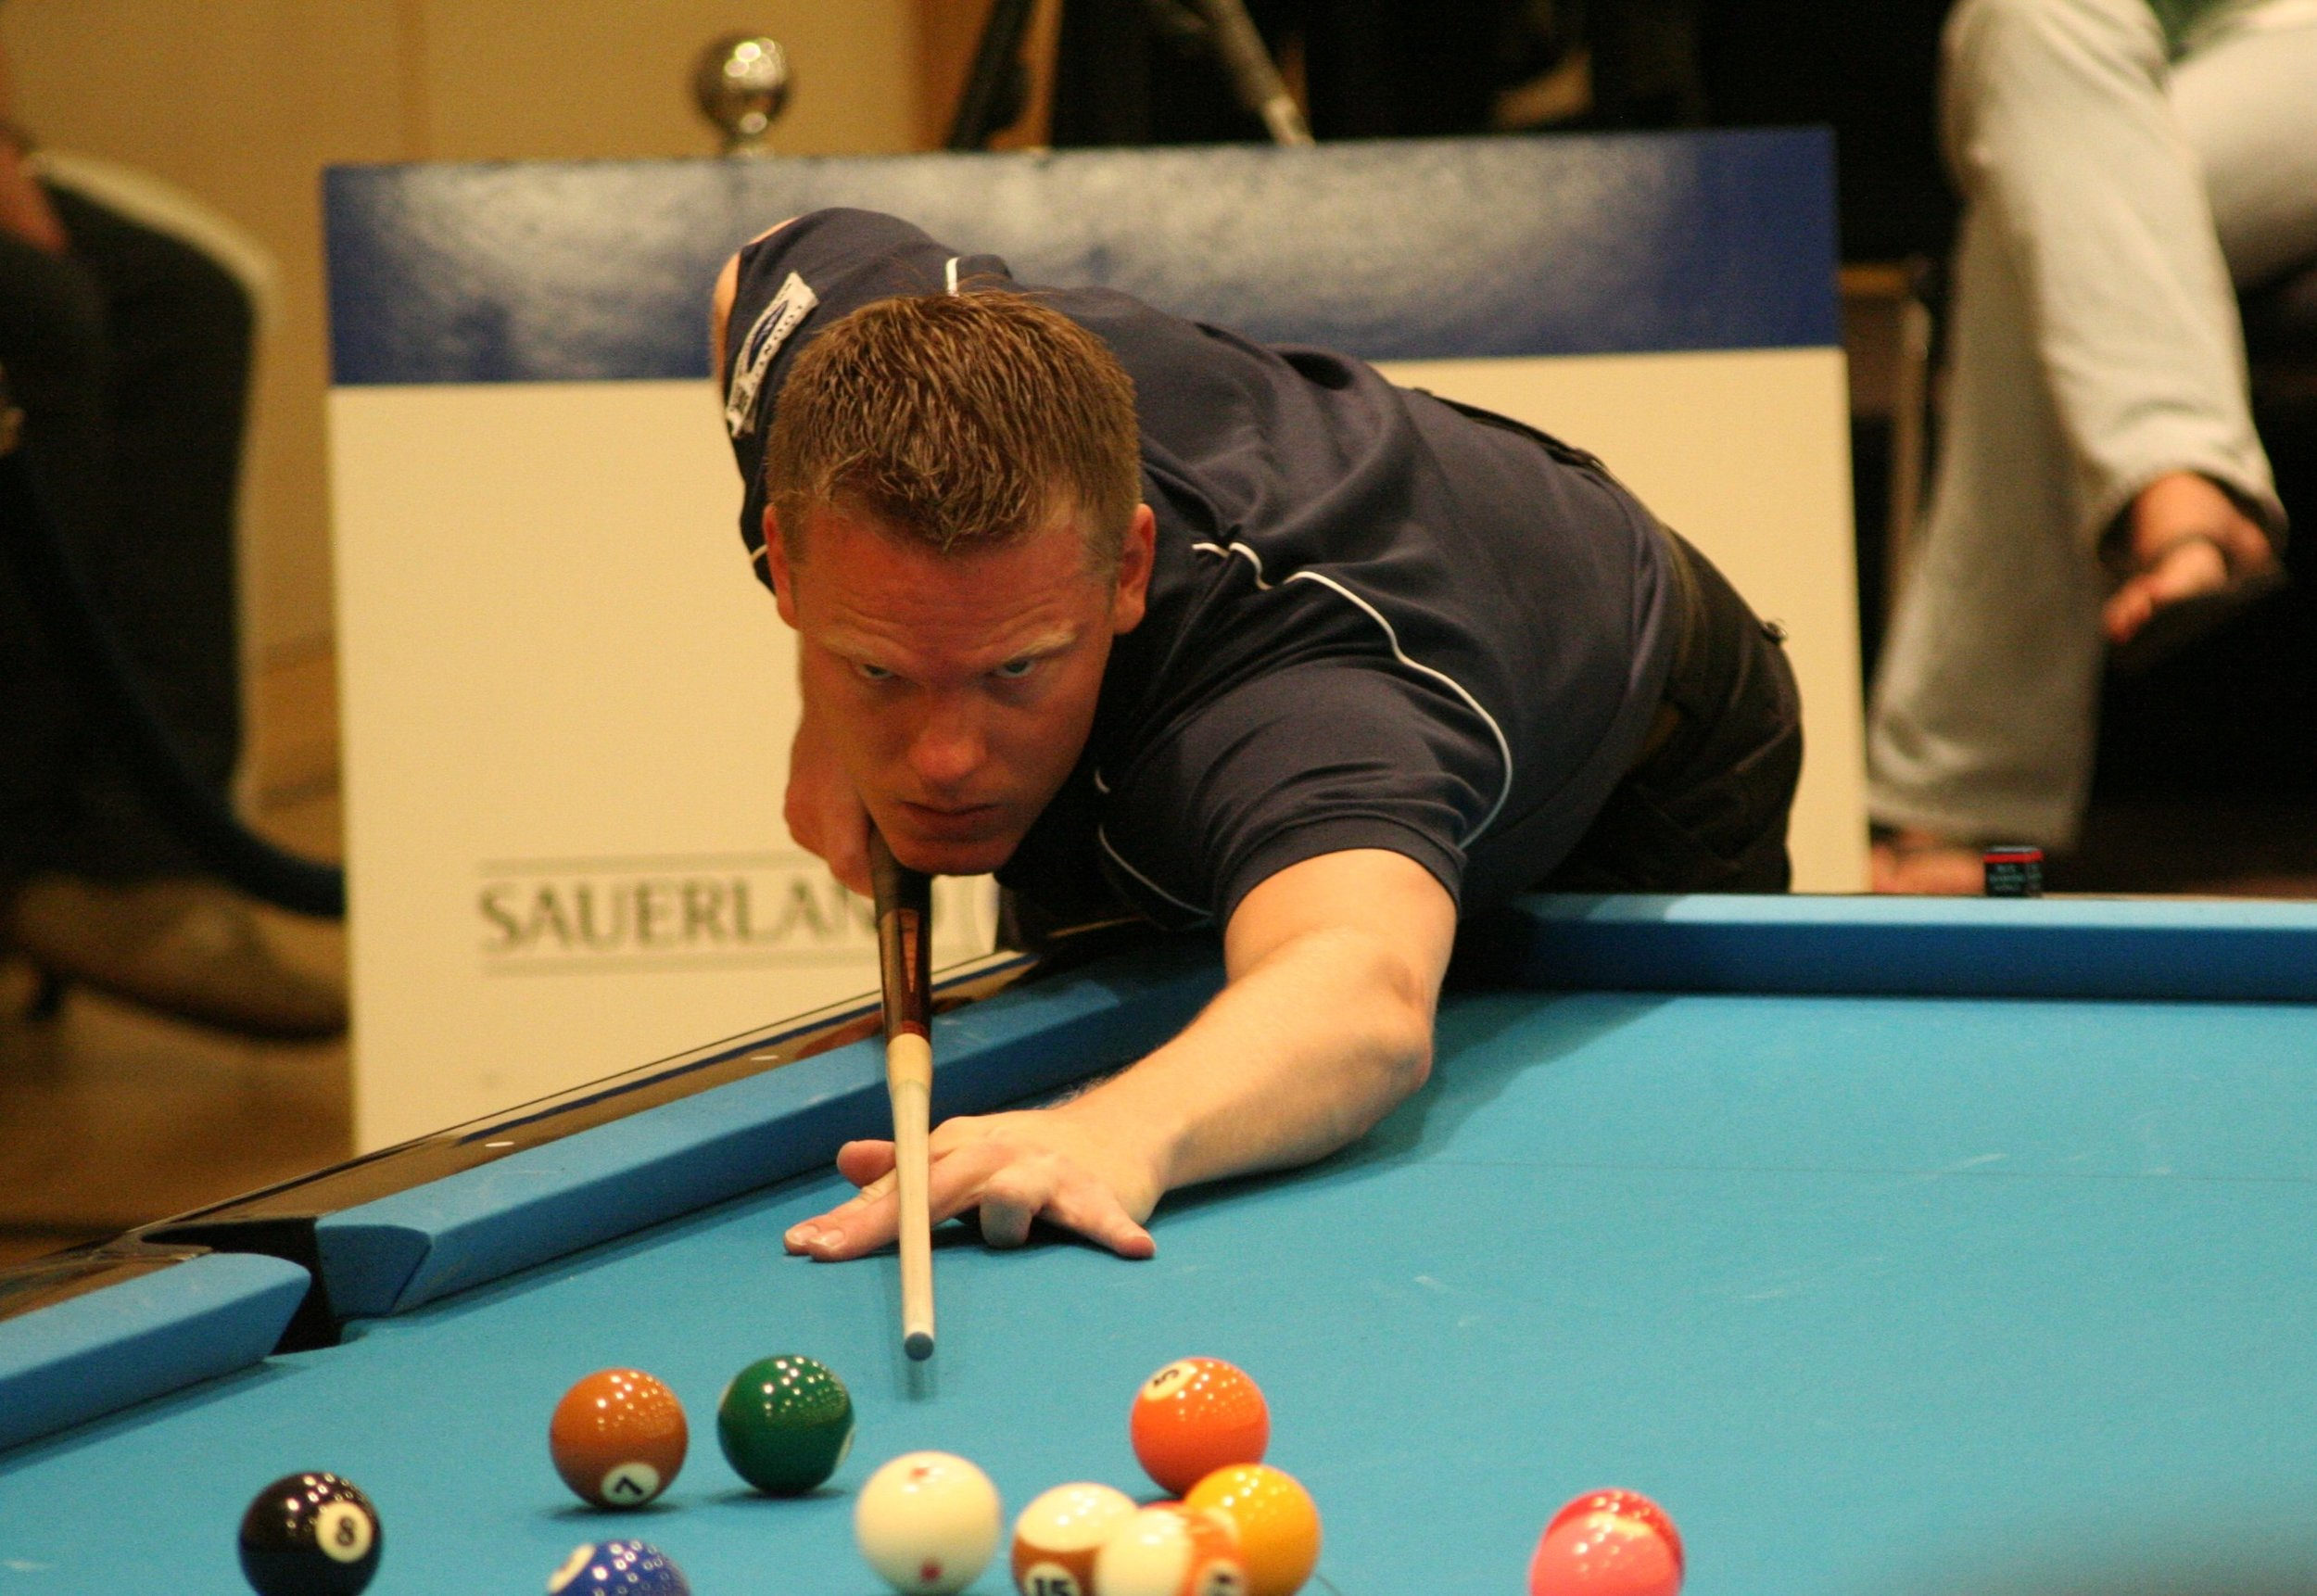 Dutch pool player  Niels Feijen  at the 2008  European Pool Championship . Sebastian Voigt; upload by  Tmv23  - Photo by Sebastian Voigt.